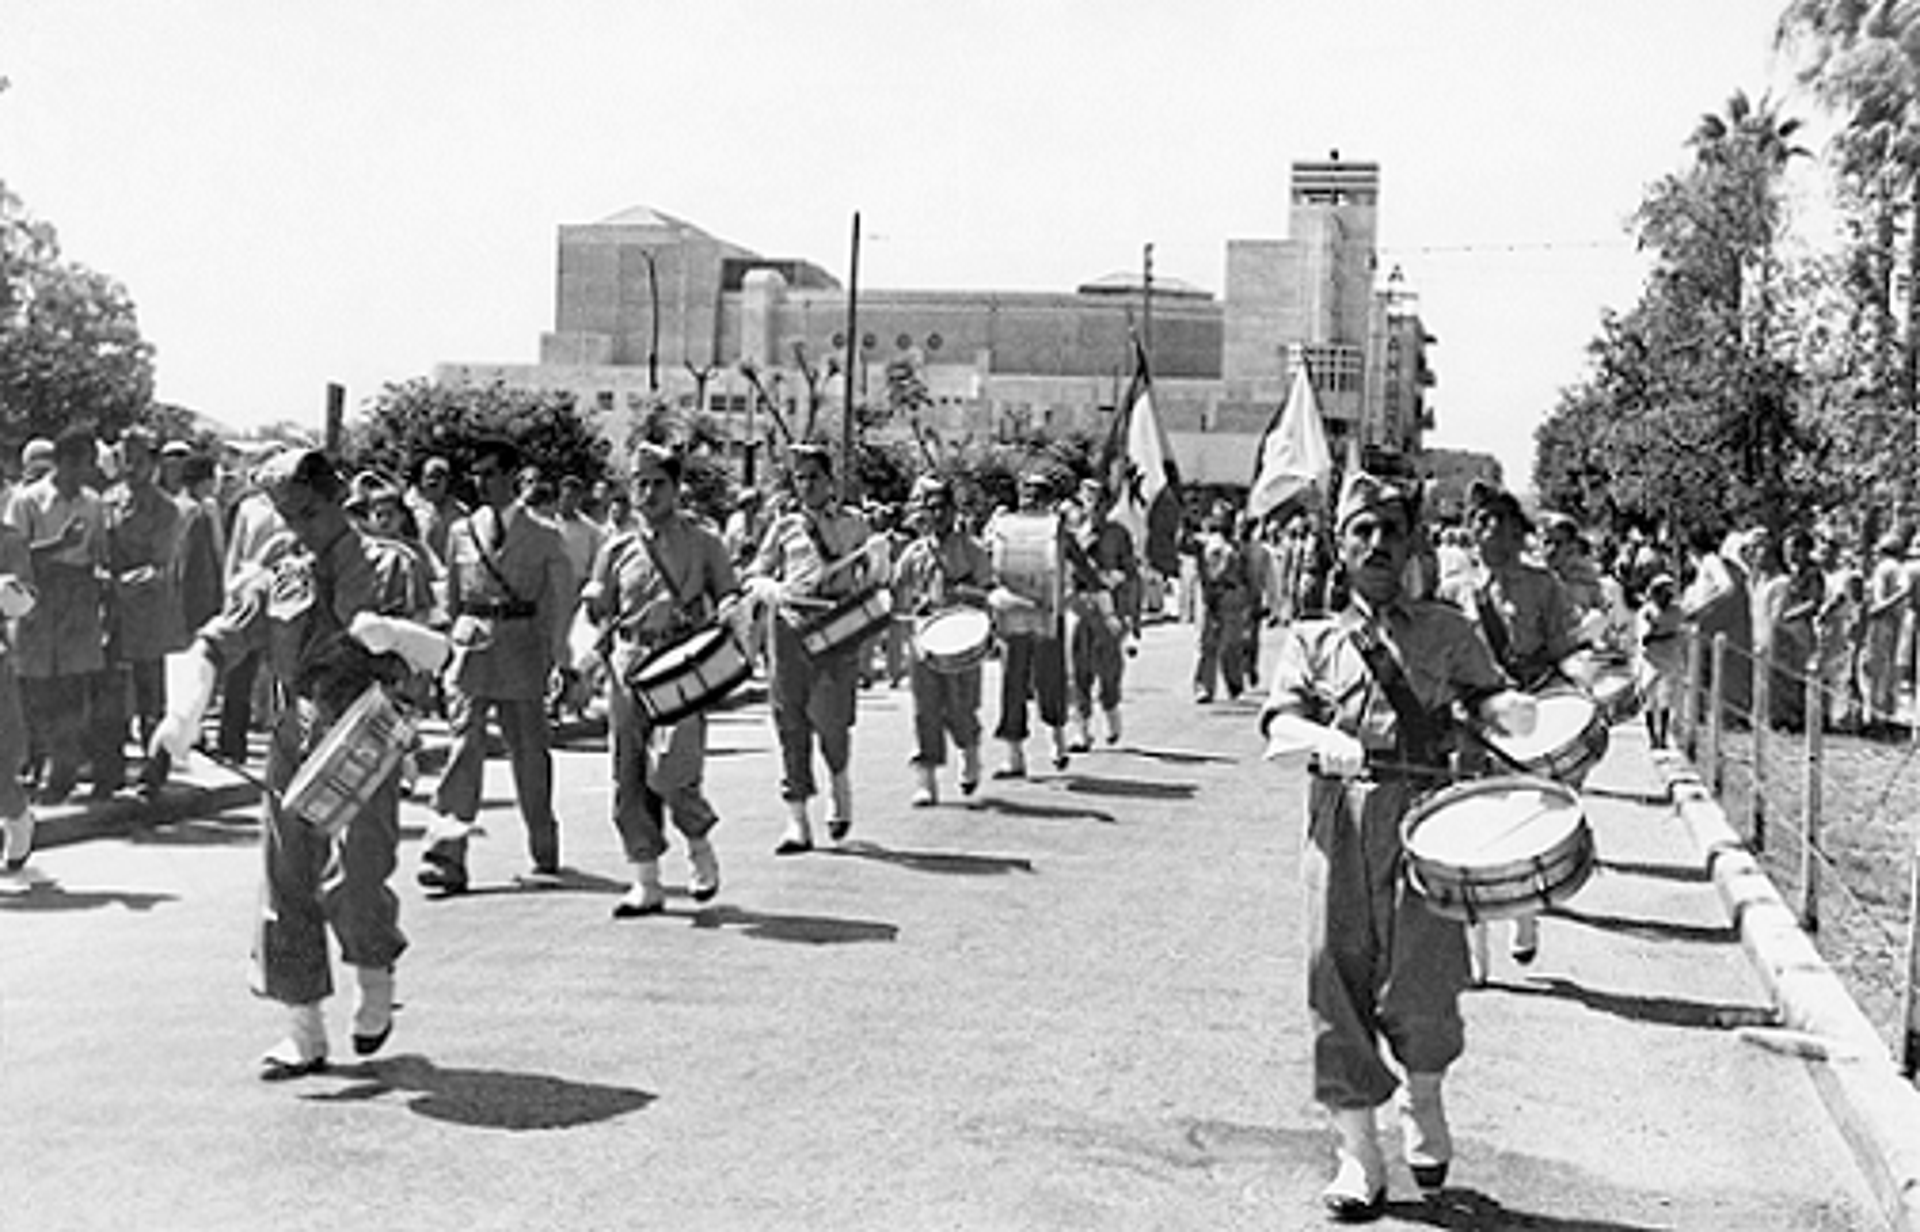 A march on King George Boulevard (now Jerusalem Boulevard) in Jaffa. The undated photo (likely taken in early 1948) was looted from the office of Al-Haj Ibrahim, Haifa.